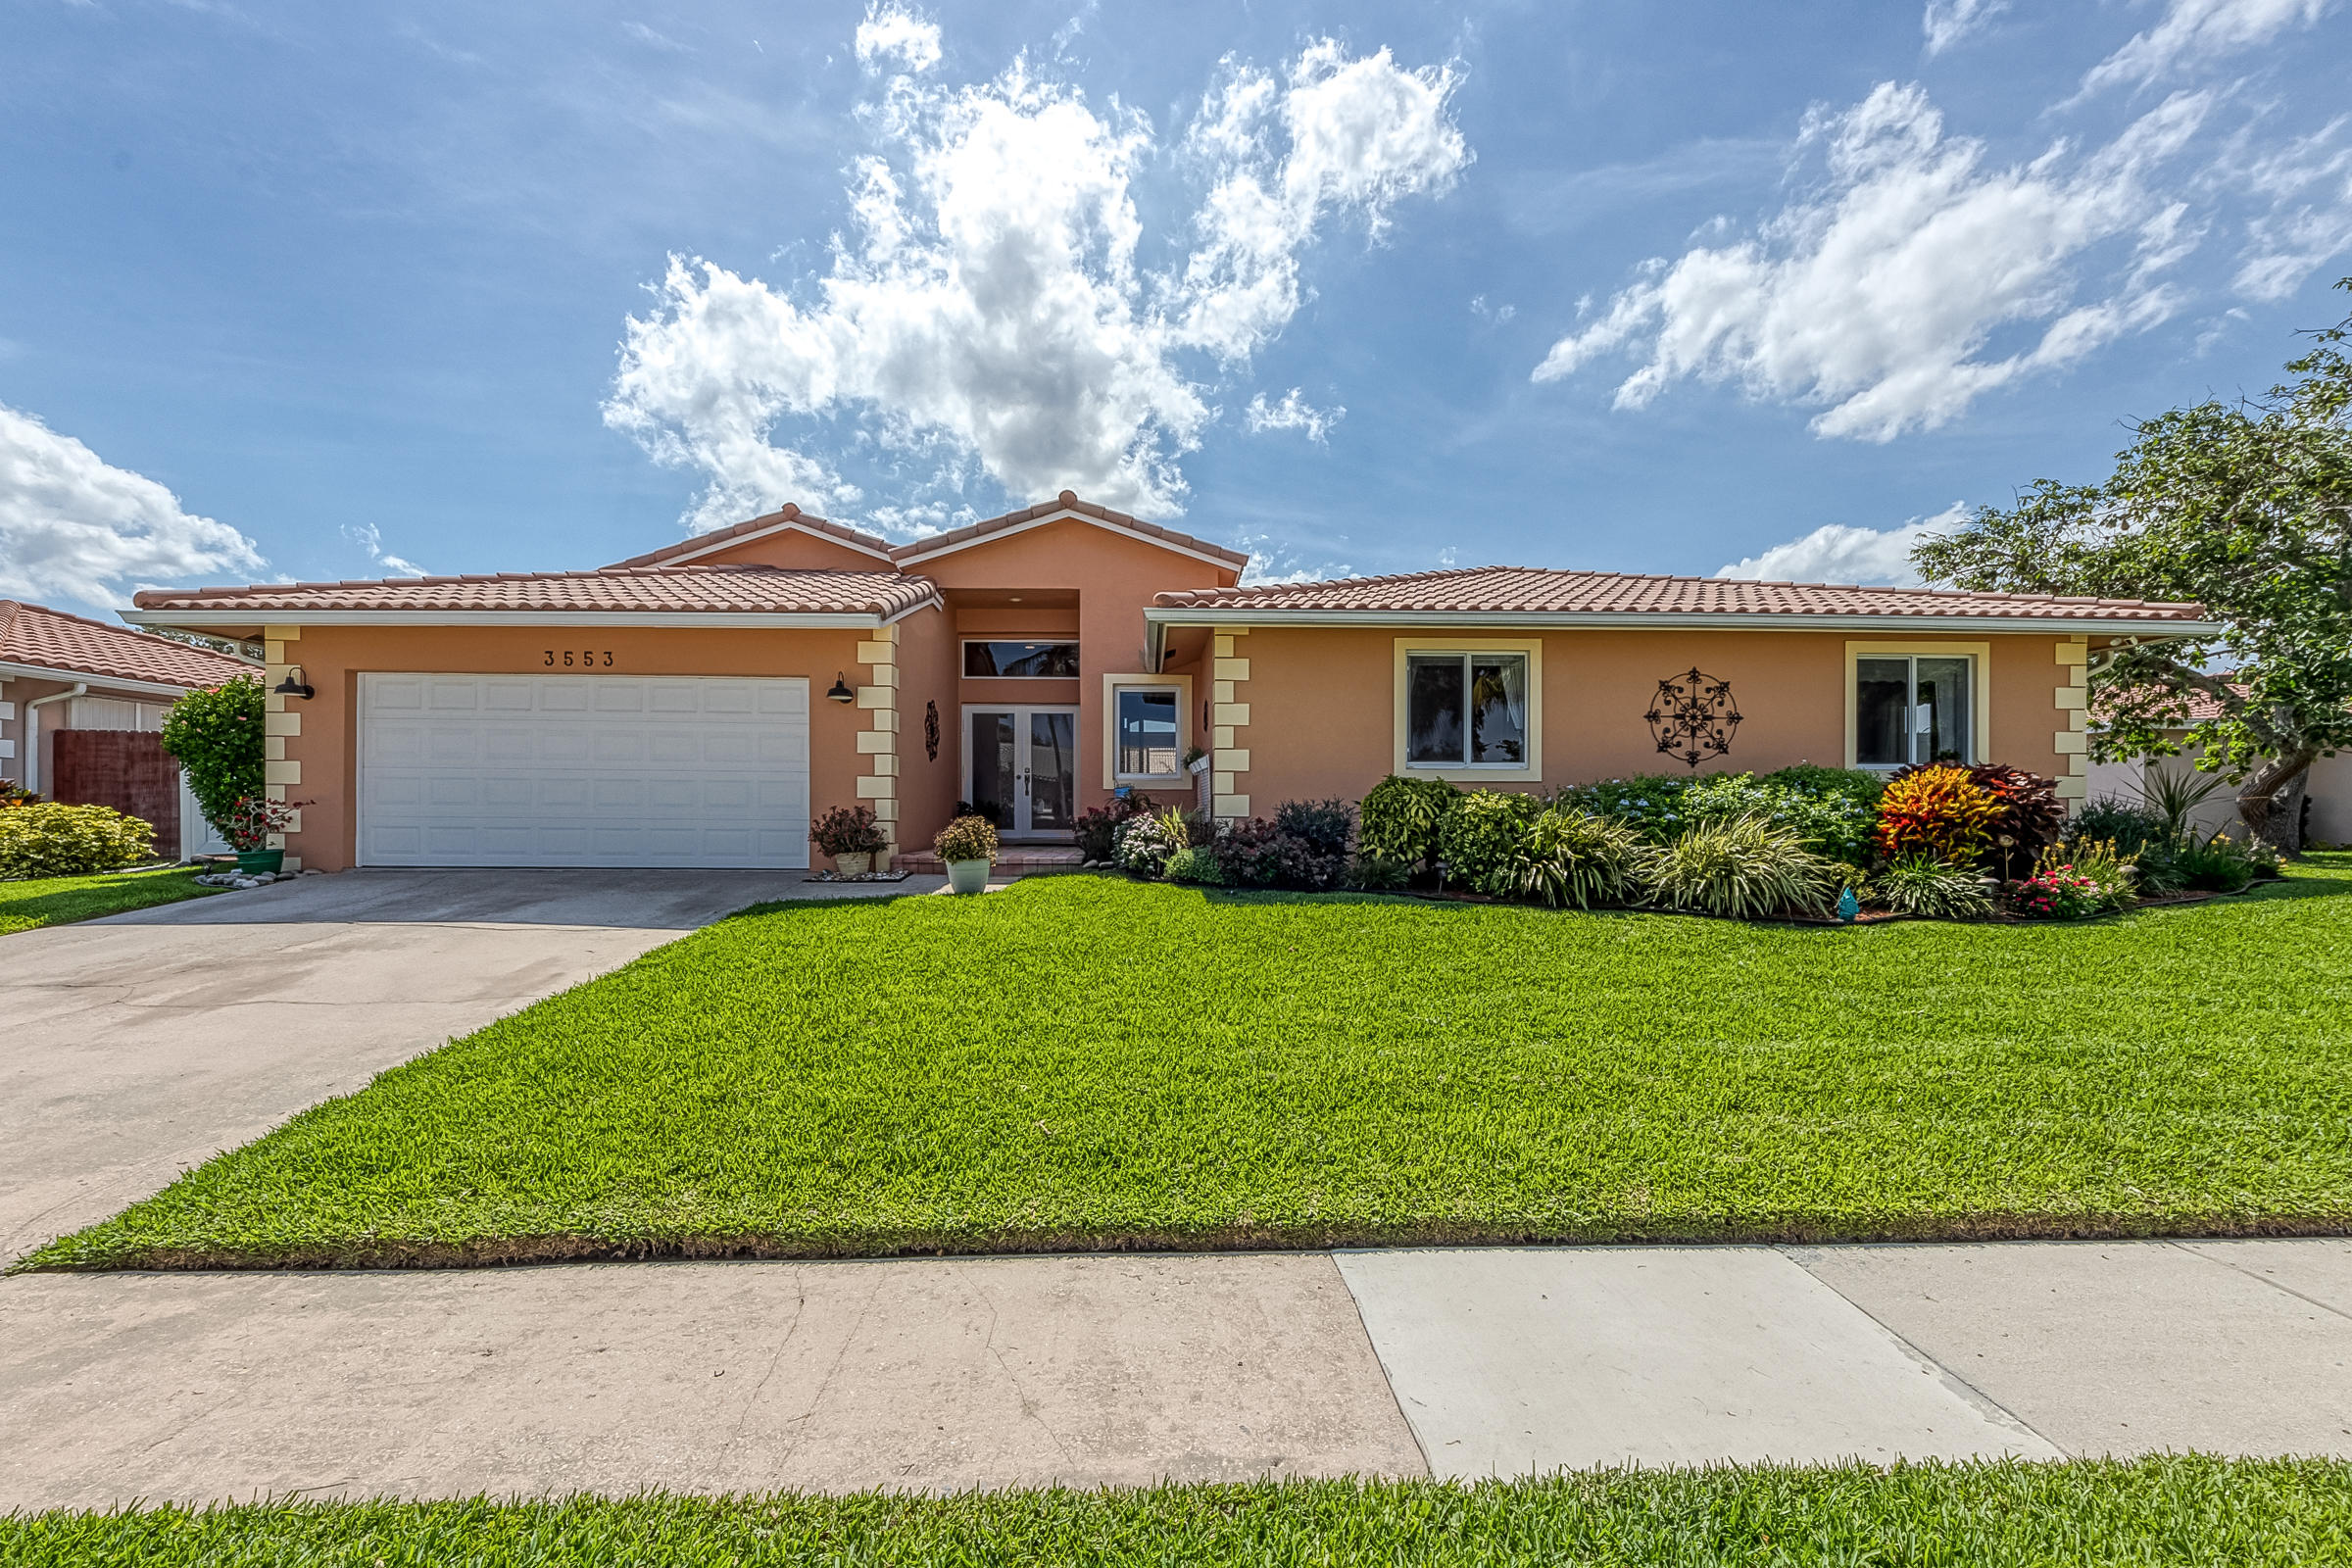 Home for sale in Boca Madera Boca Raton Florida